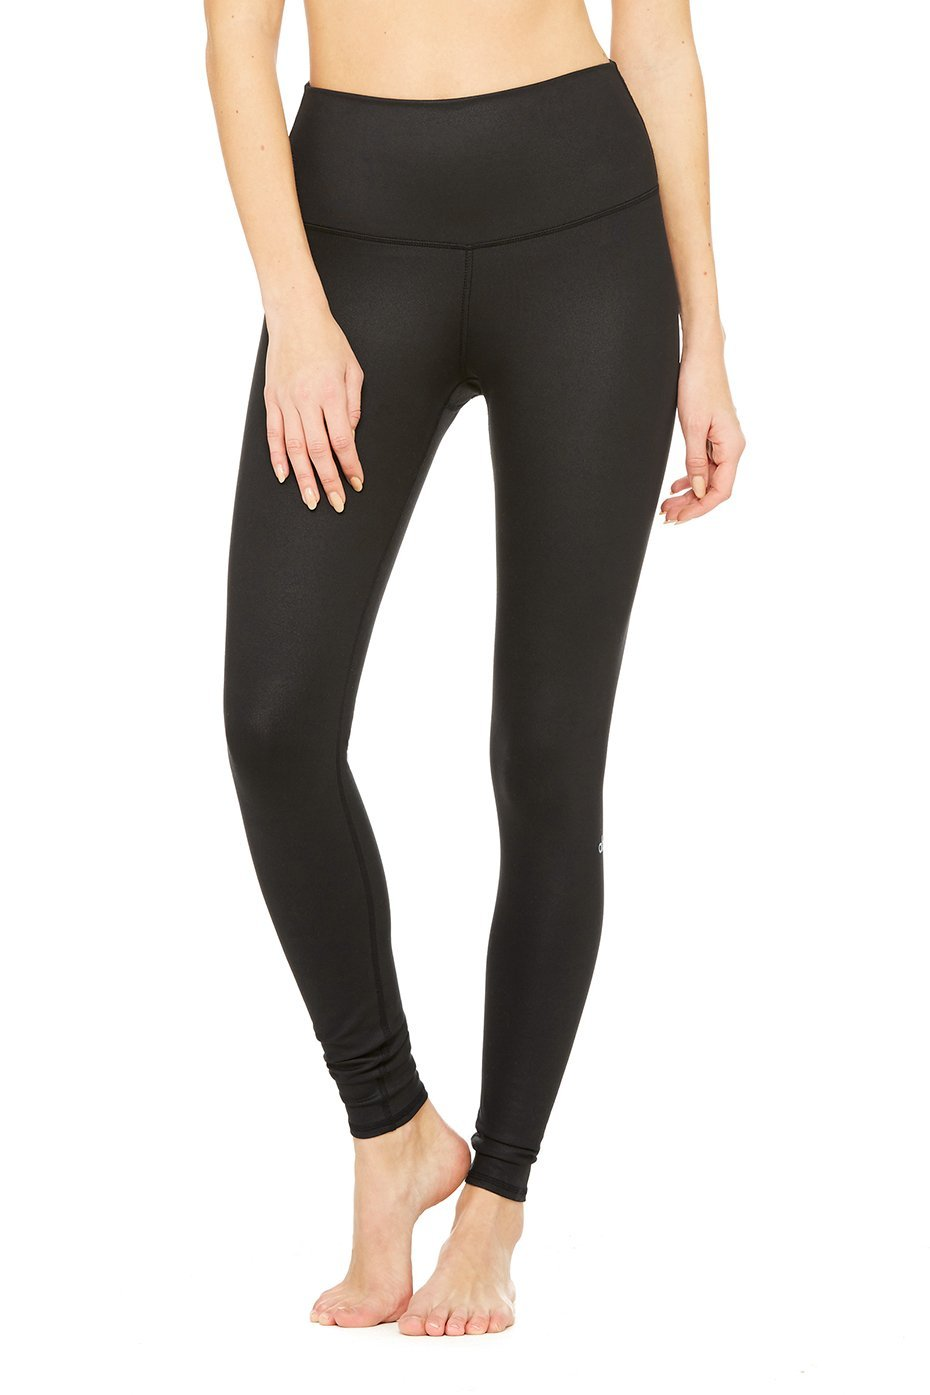 Alo Yoga Black Leggings